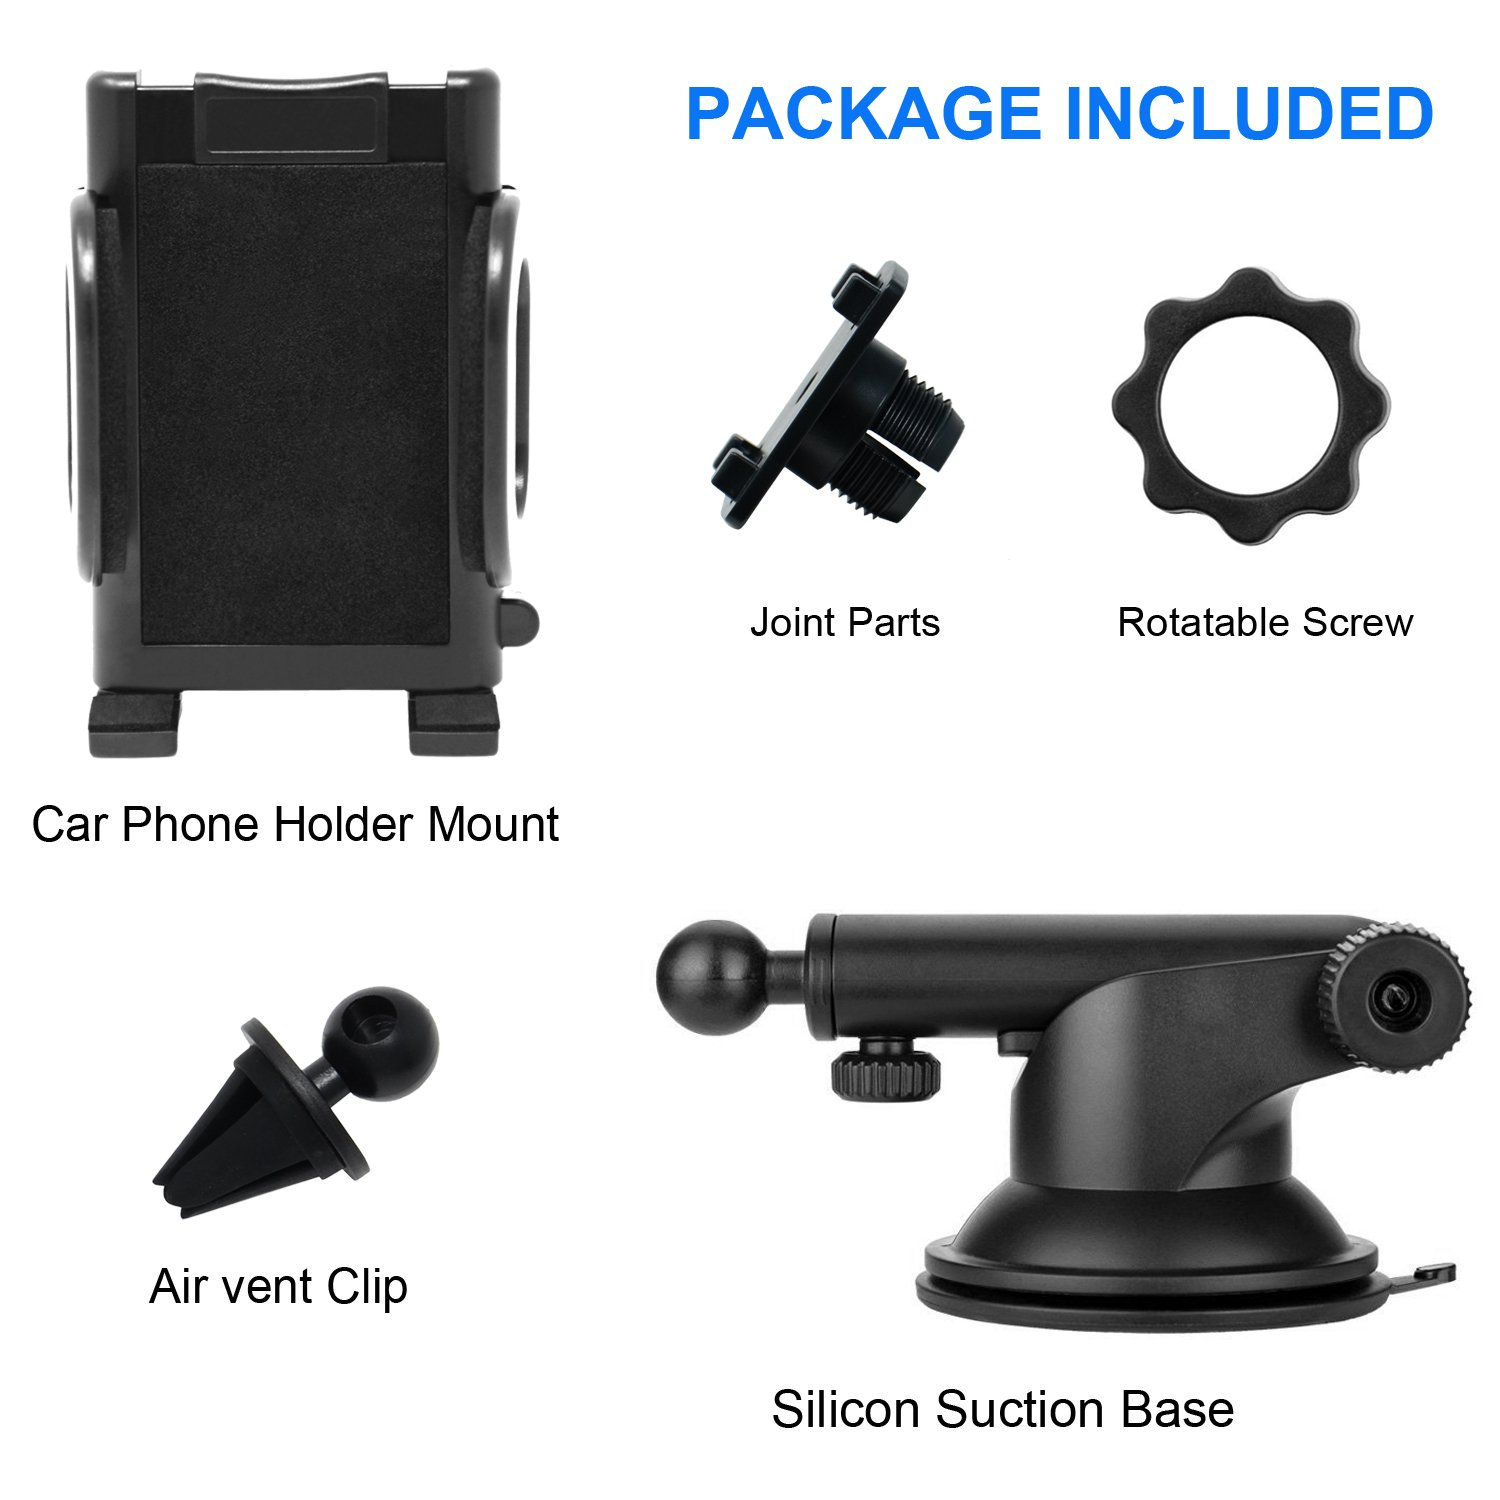 iProductsUS Phone Holder for Car, Universal Car Phone Mount, Hands Free Windshield Dashboard and Air Vent Car Cradle Mount for iPhone Samsung LG HTC All of the Smartphones and GPS Devices (BlackGray)